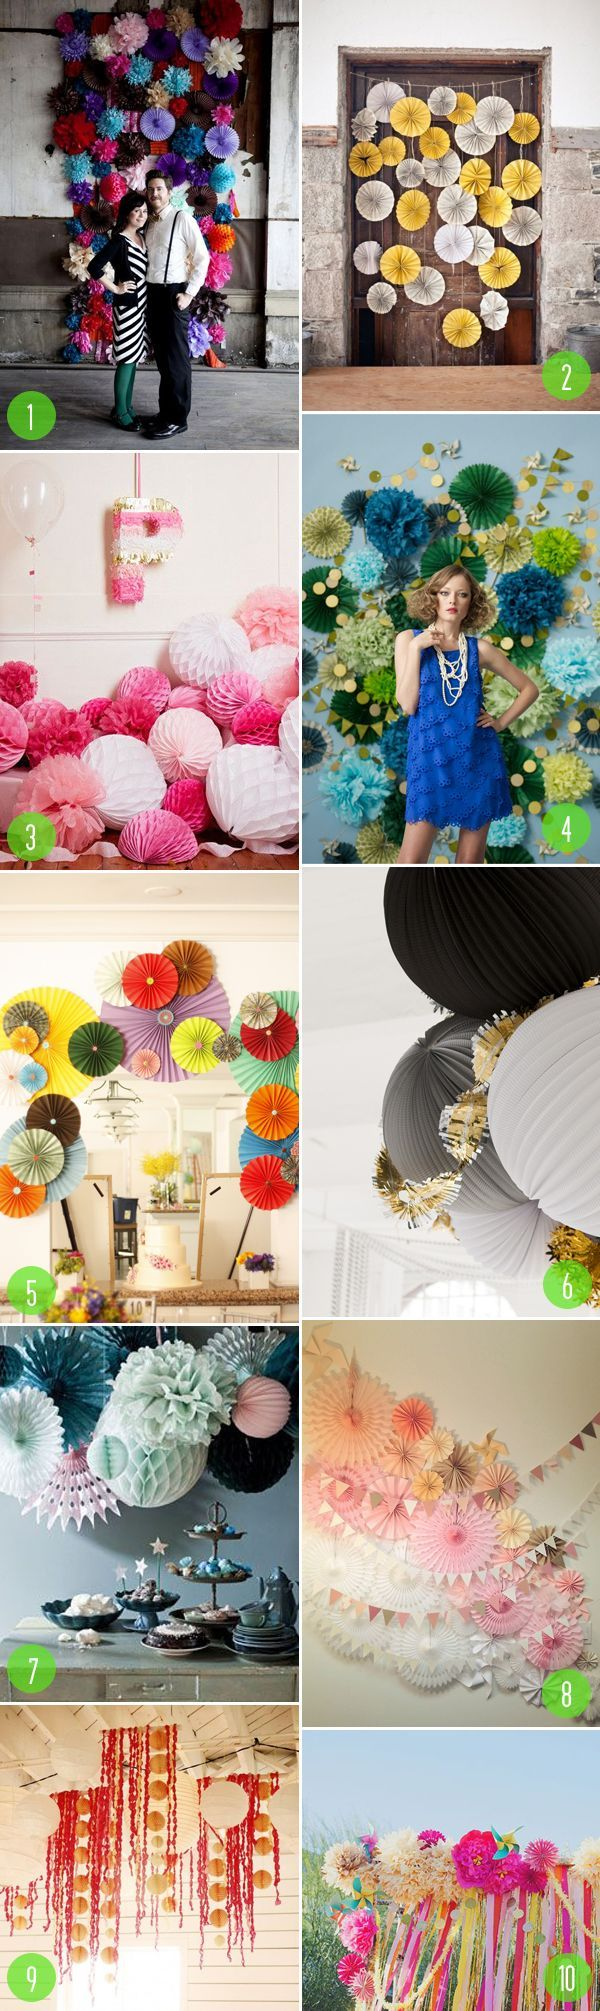 Top 10 - Wedding Pompoms & Fans via @Vané Broussard | Brooklyn Bride